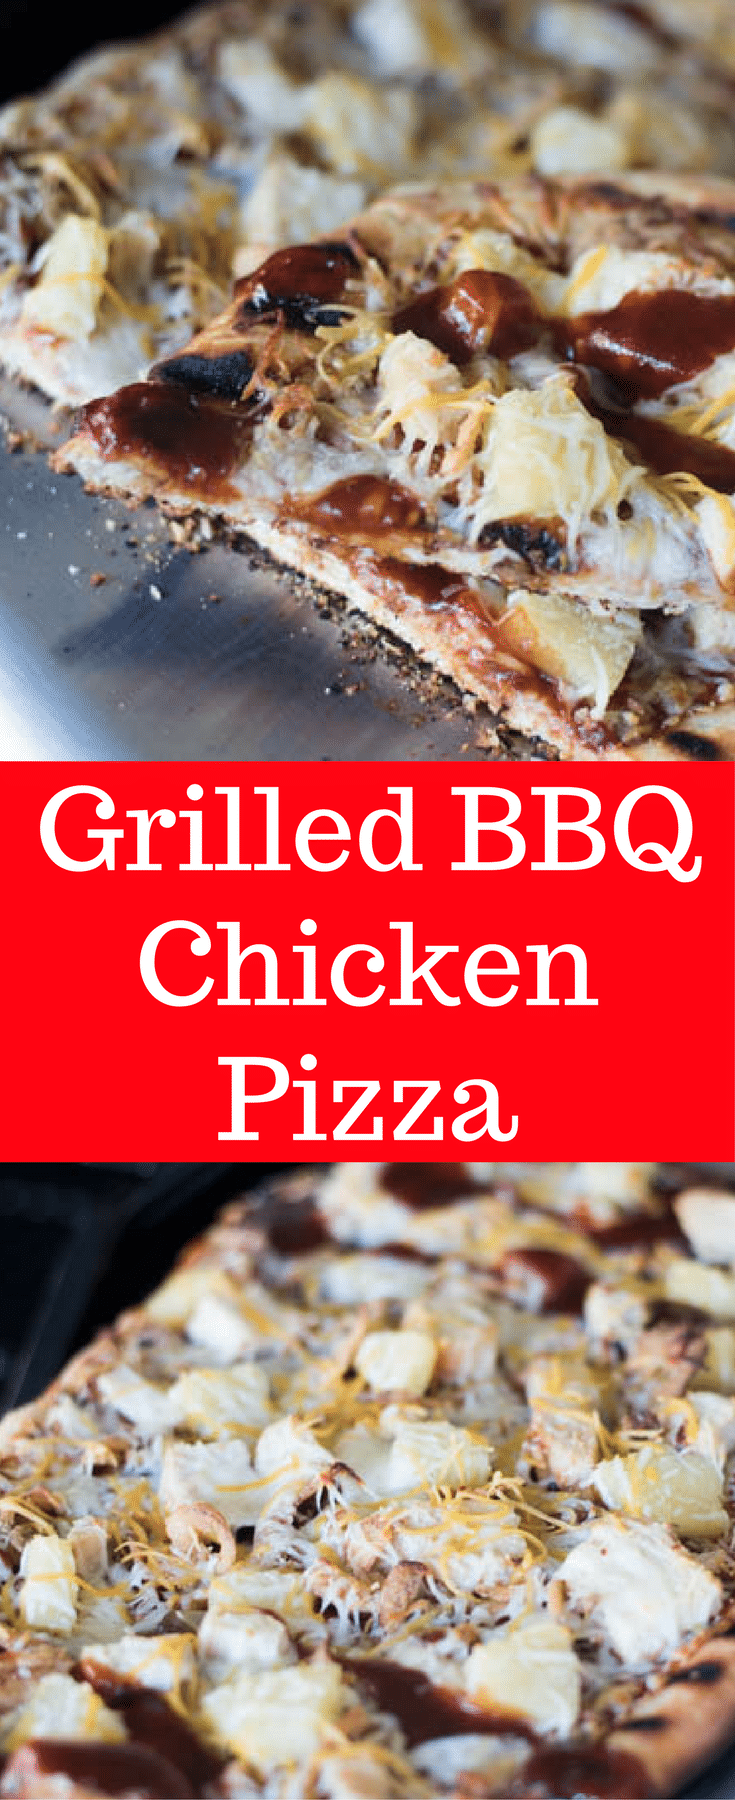 Grilled BBQ Chicken Pizza / BBQ Chicken pizza / BBQ Pizza / Grilled ...